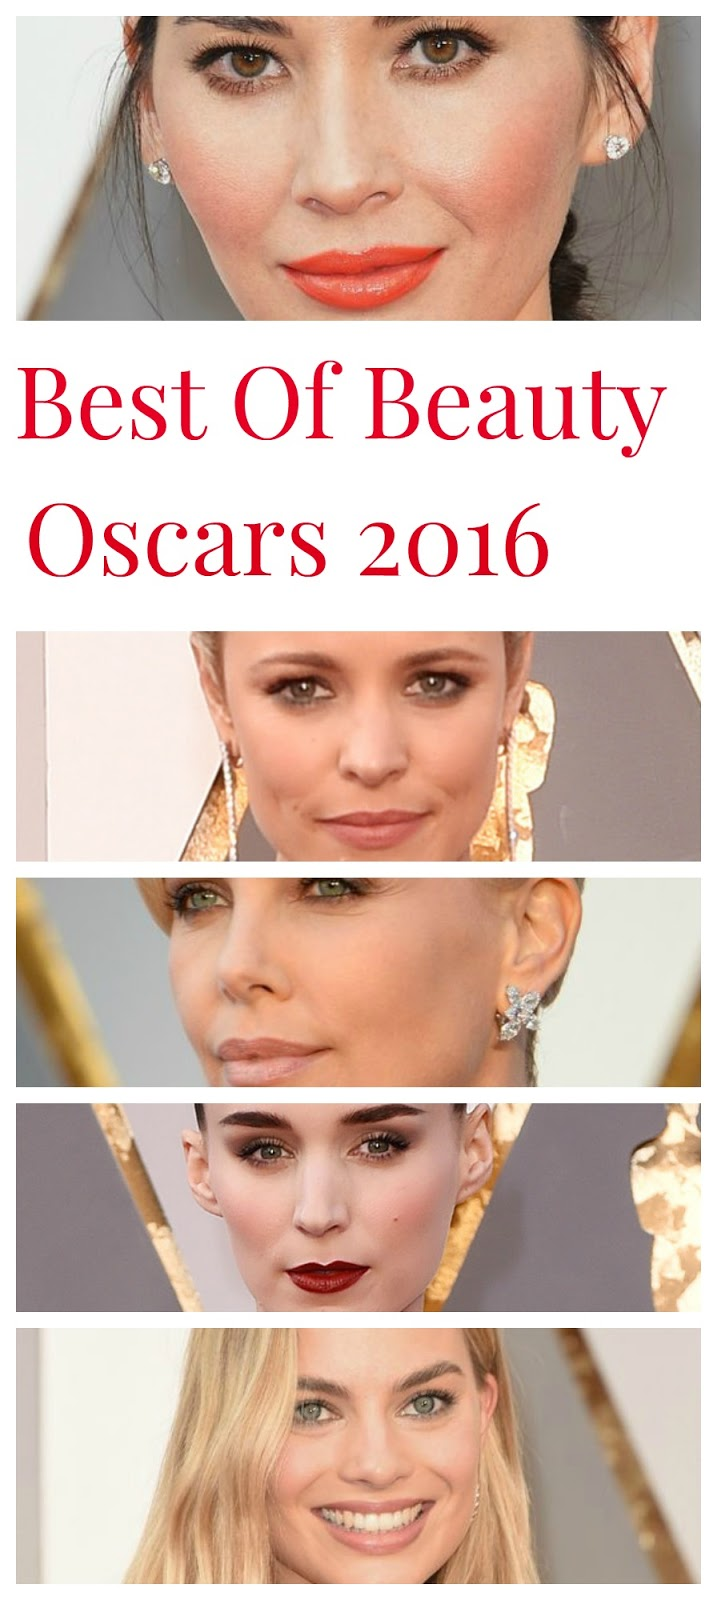 Best-Of-Beauty-Oscars-2016